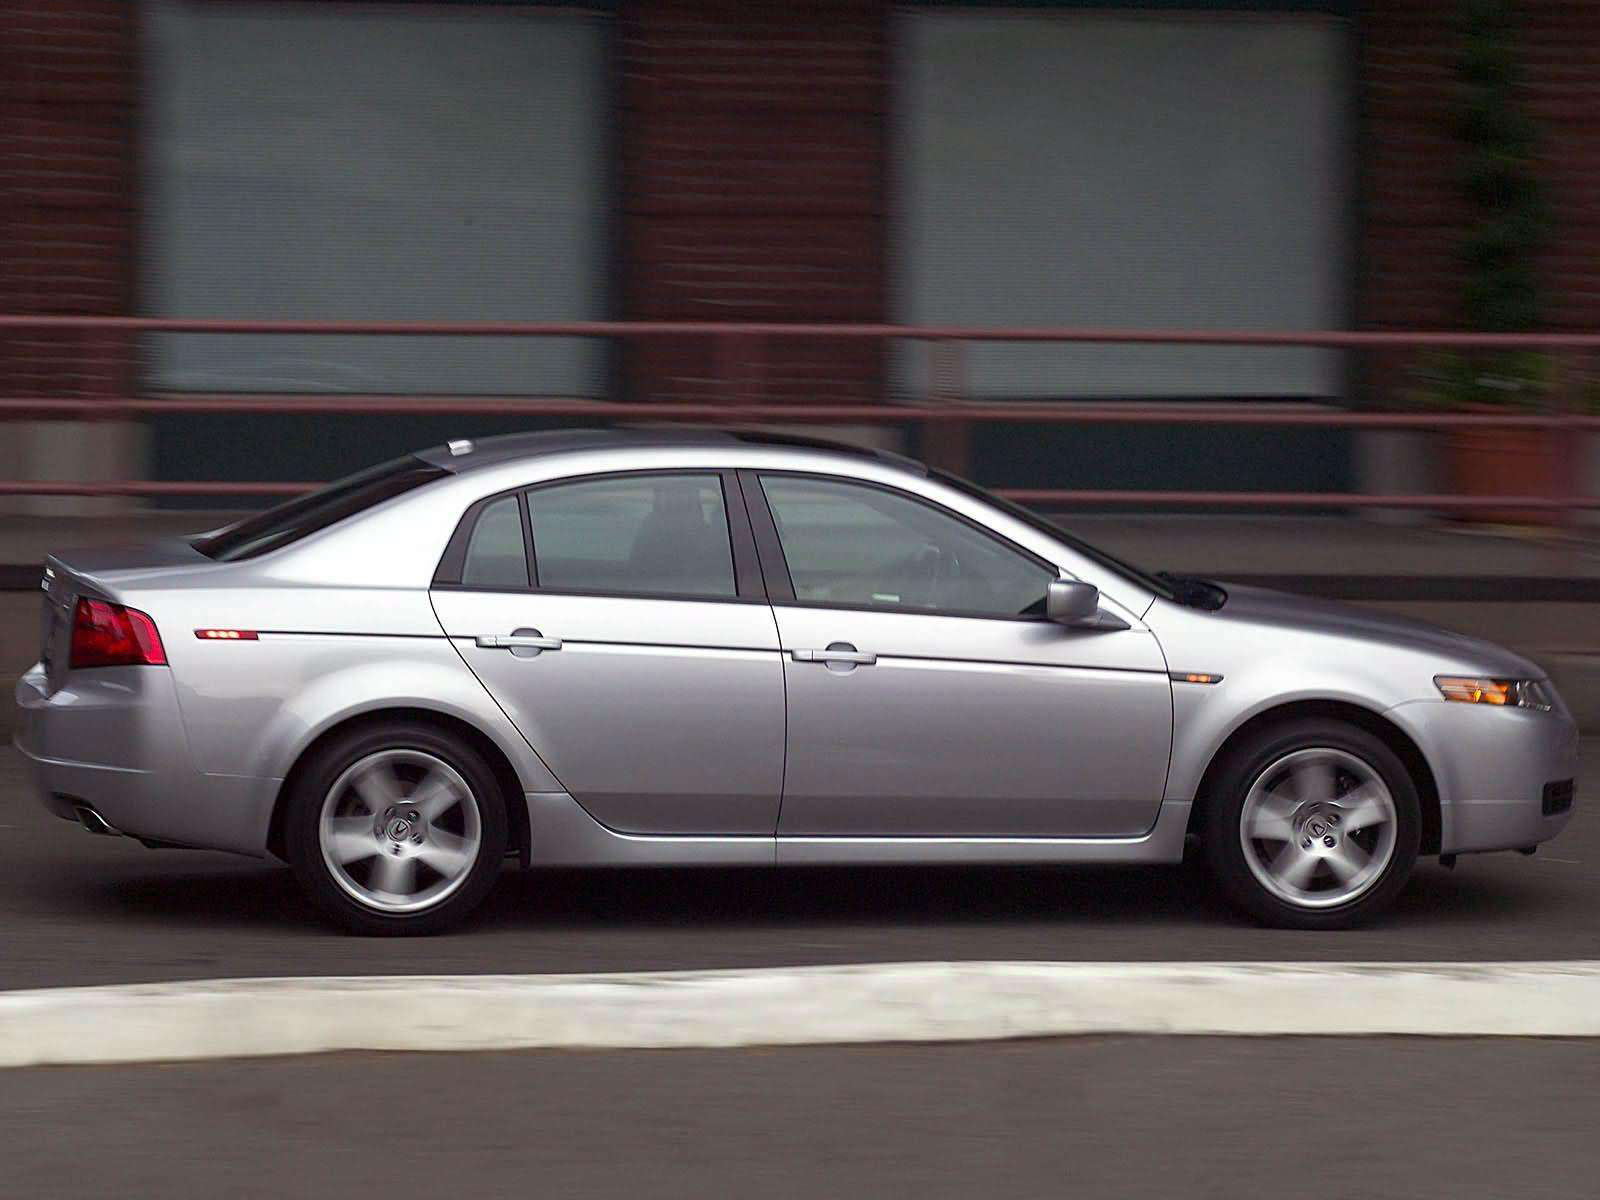 2004 Acura 3 2 Tl Japanese Car Wallpapers HD Wallpapers Download free images and photos [musssic.tk]